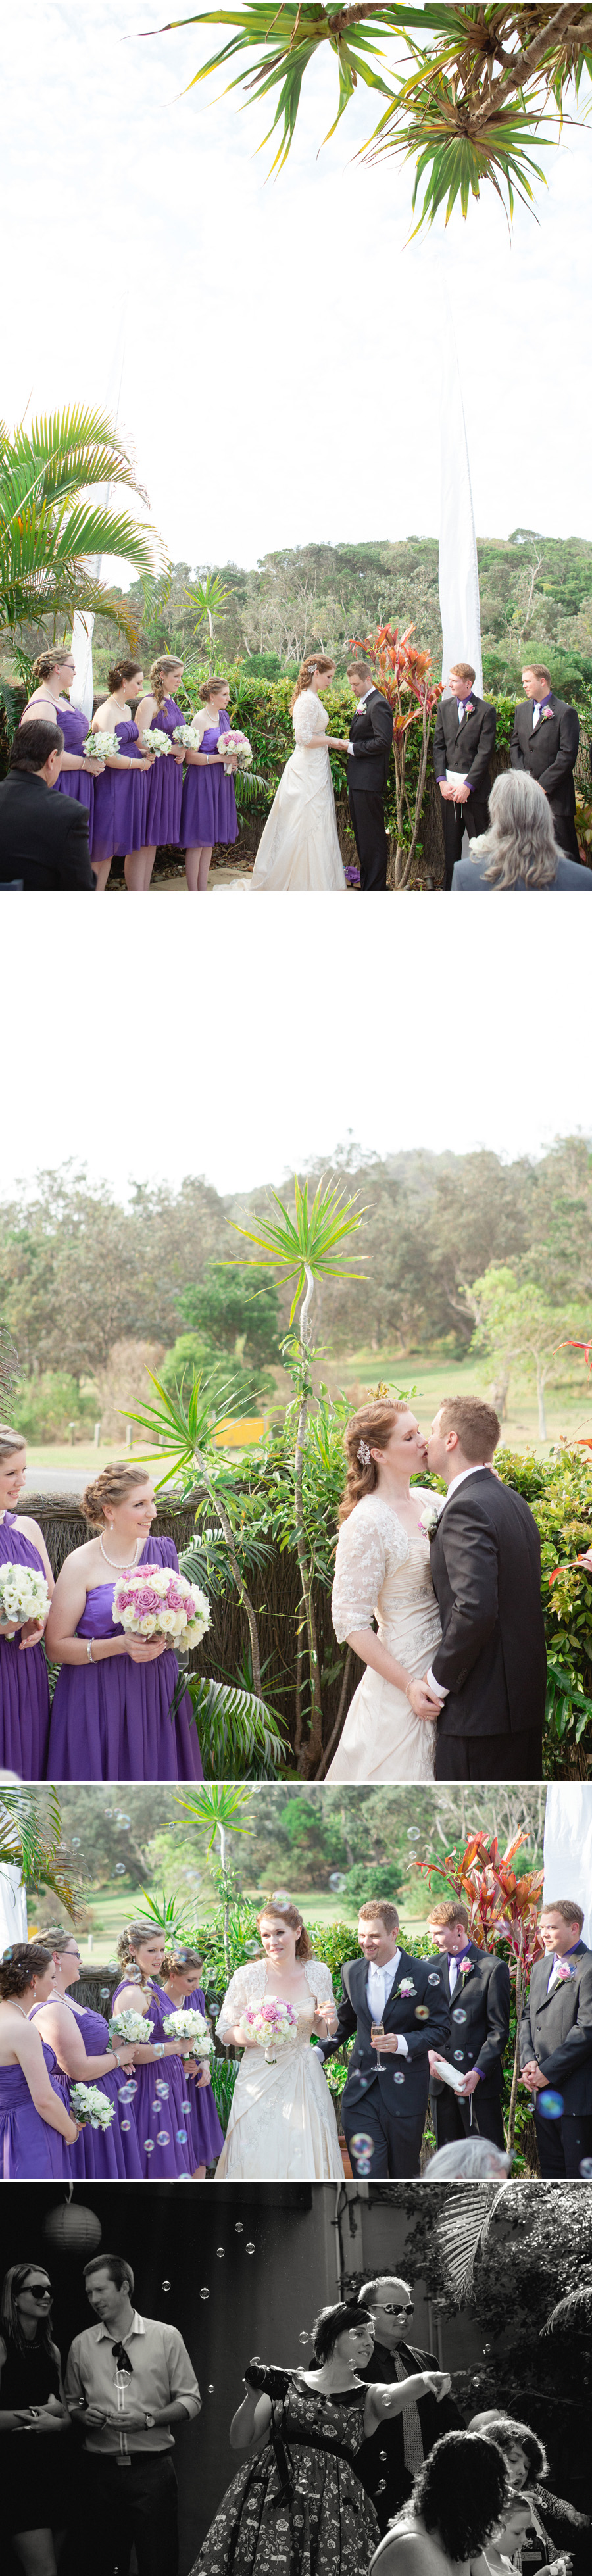 Brisbane Wedding Photography_039.jpg